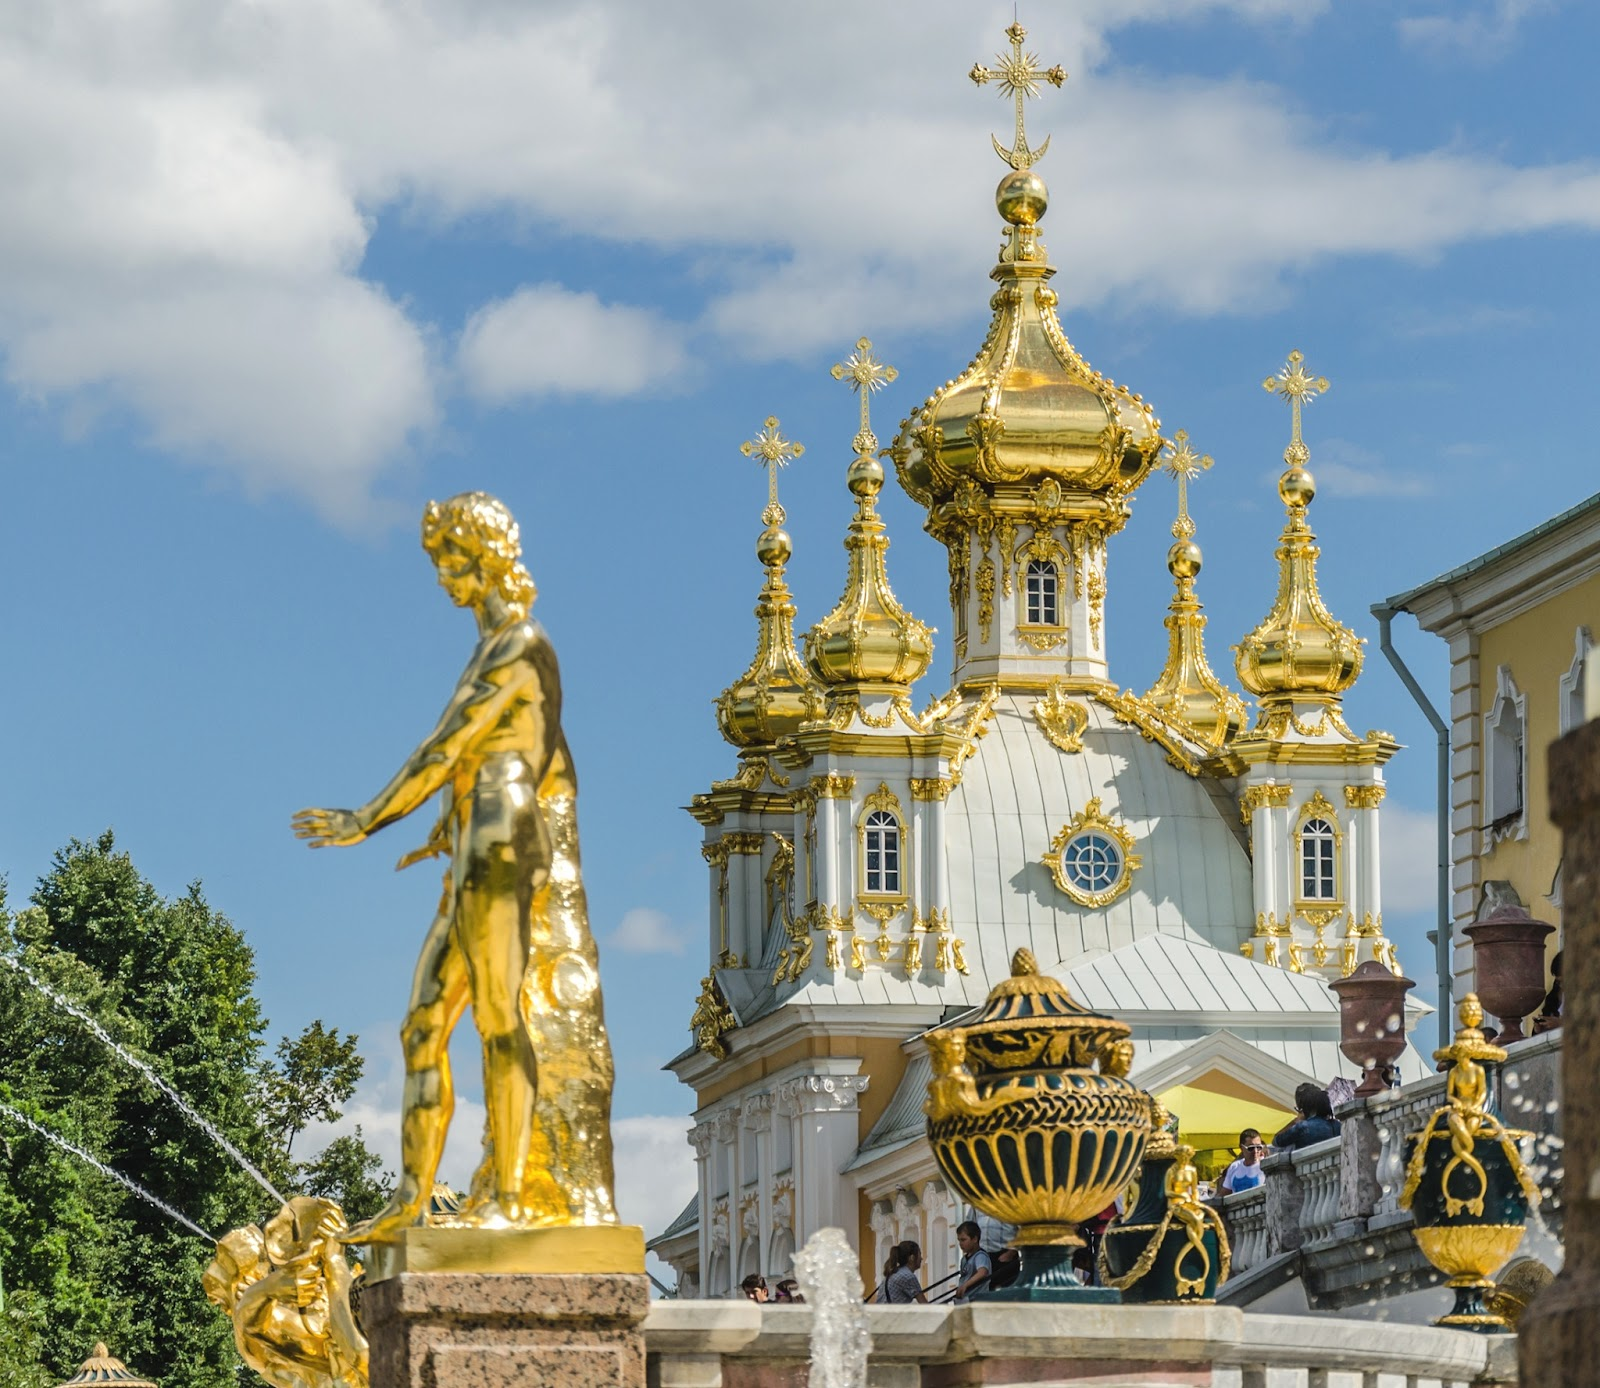 Russia: Travel & Adventures: Peterhof ( Petrodvorets, Петергоф